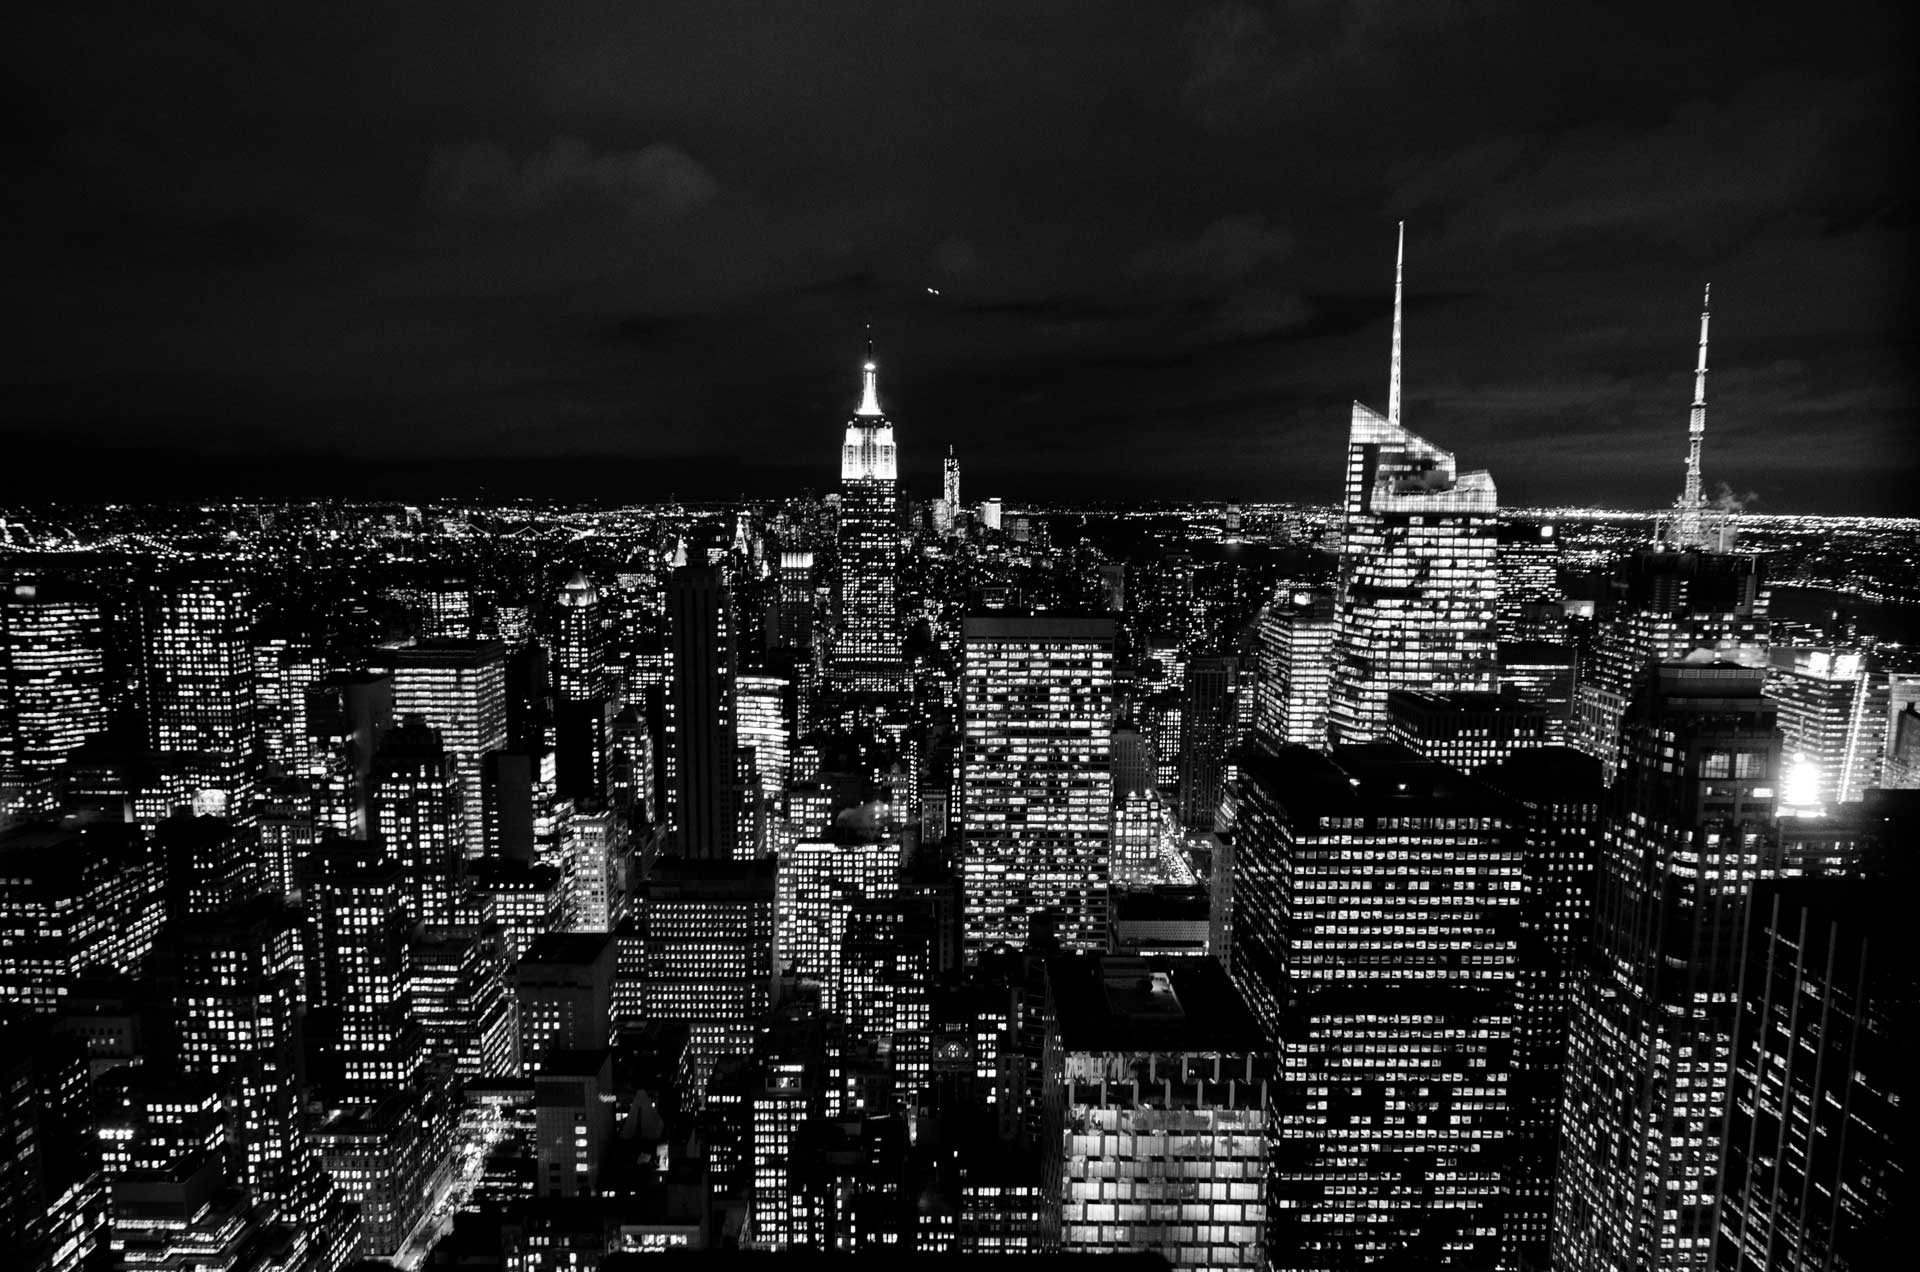 Black-and-white photo of skyscrapers in Manhattan at night